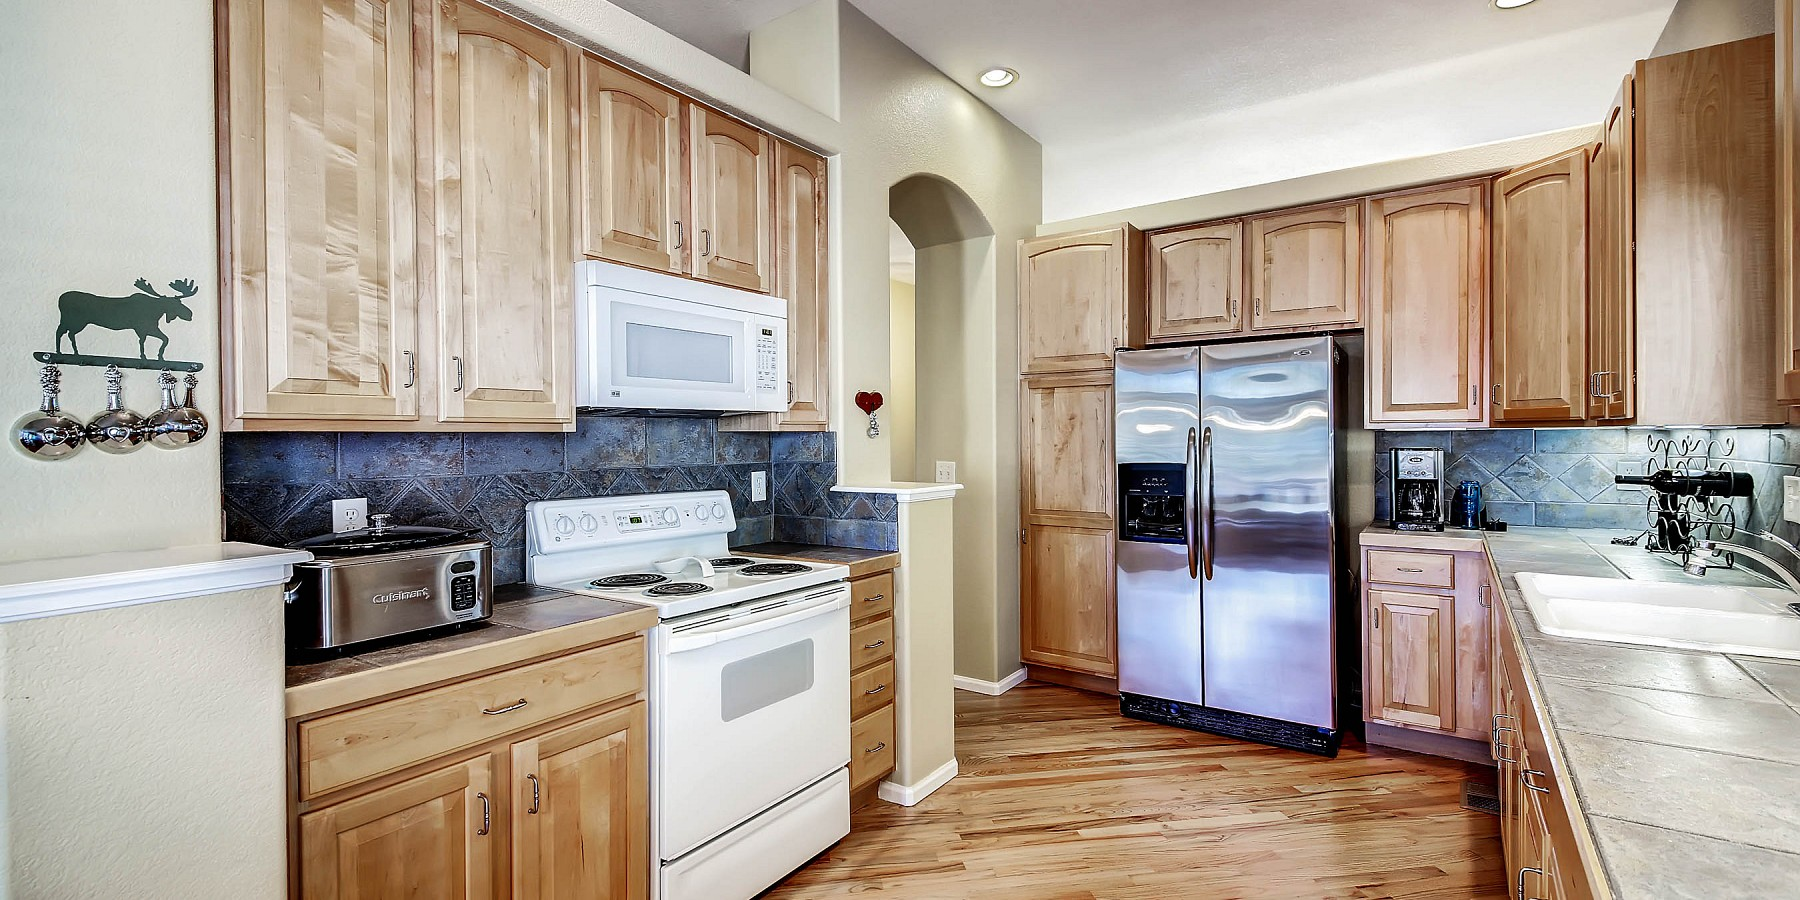 6900 West Grant Ranch Boulevard #73, Littleton, CO 80123